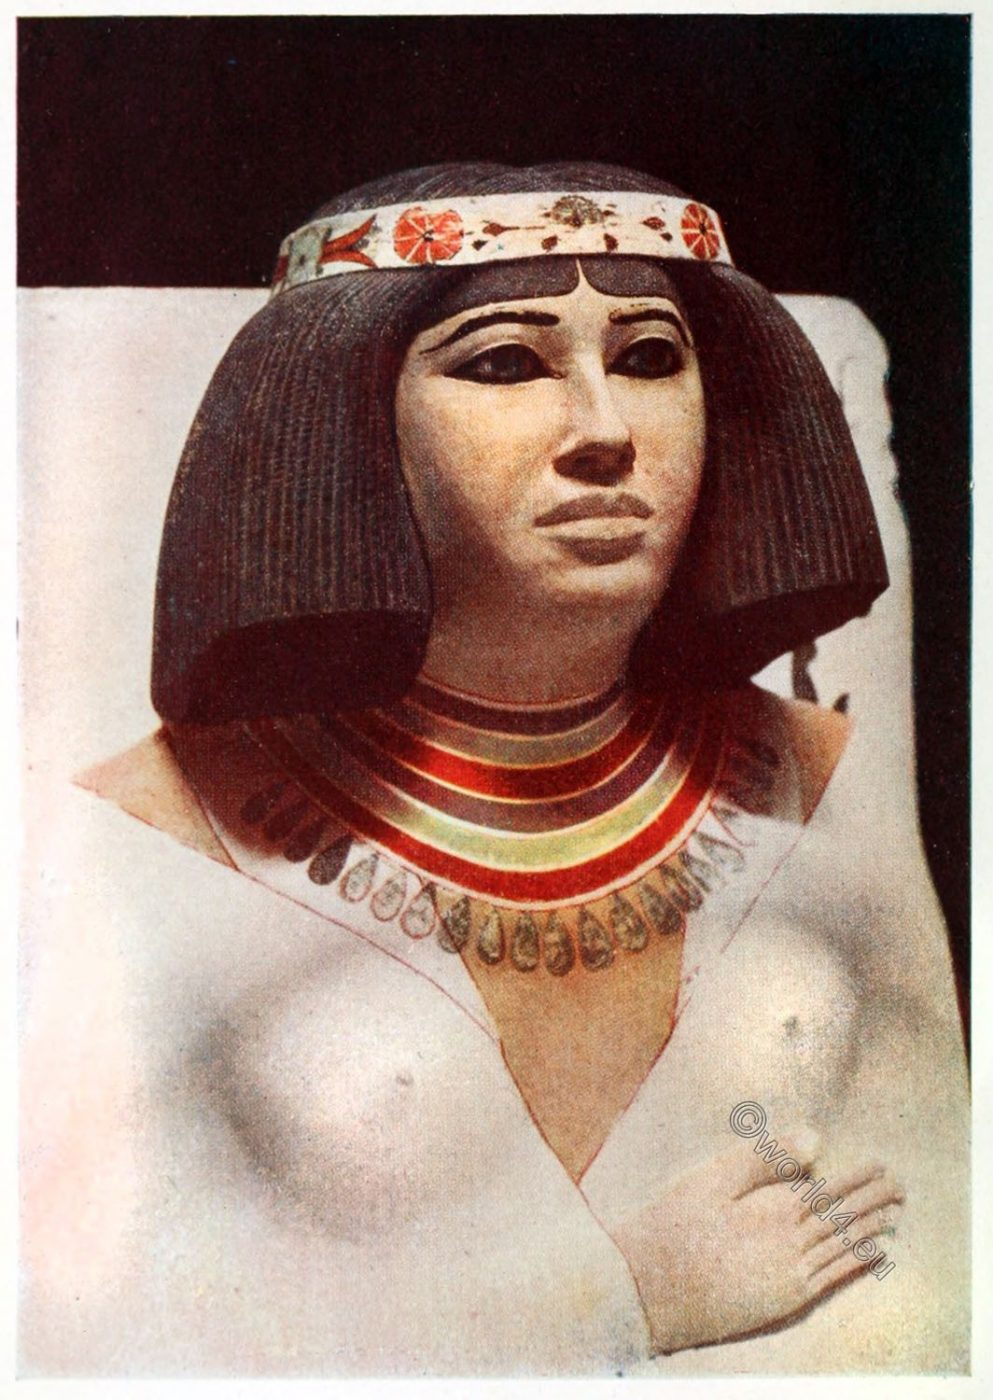 Egyptian, Princess, Nefret